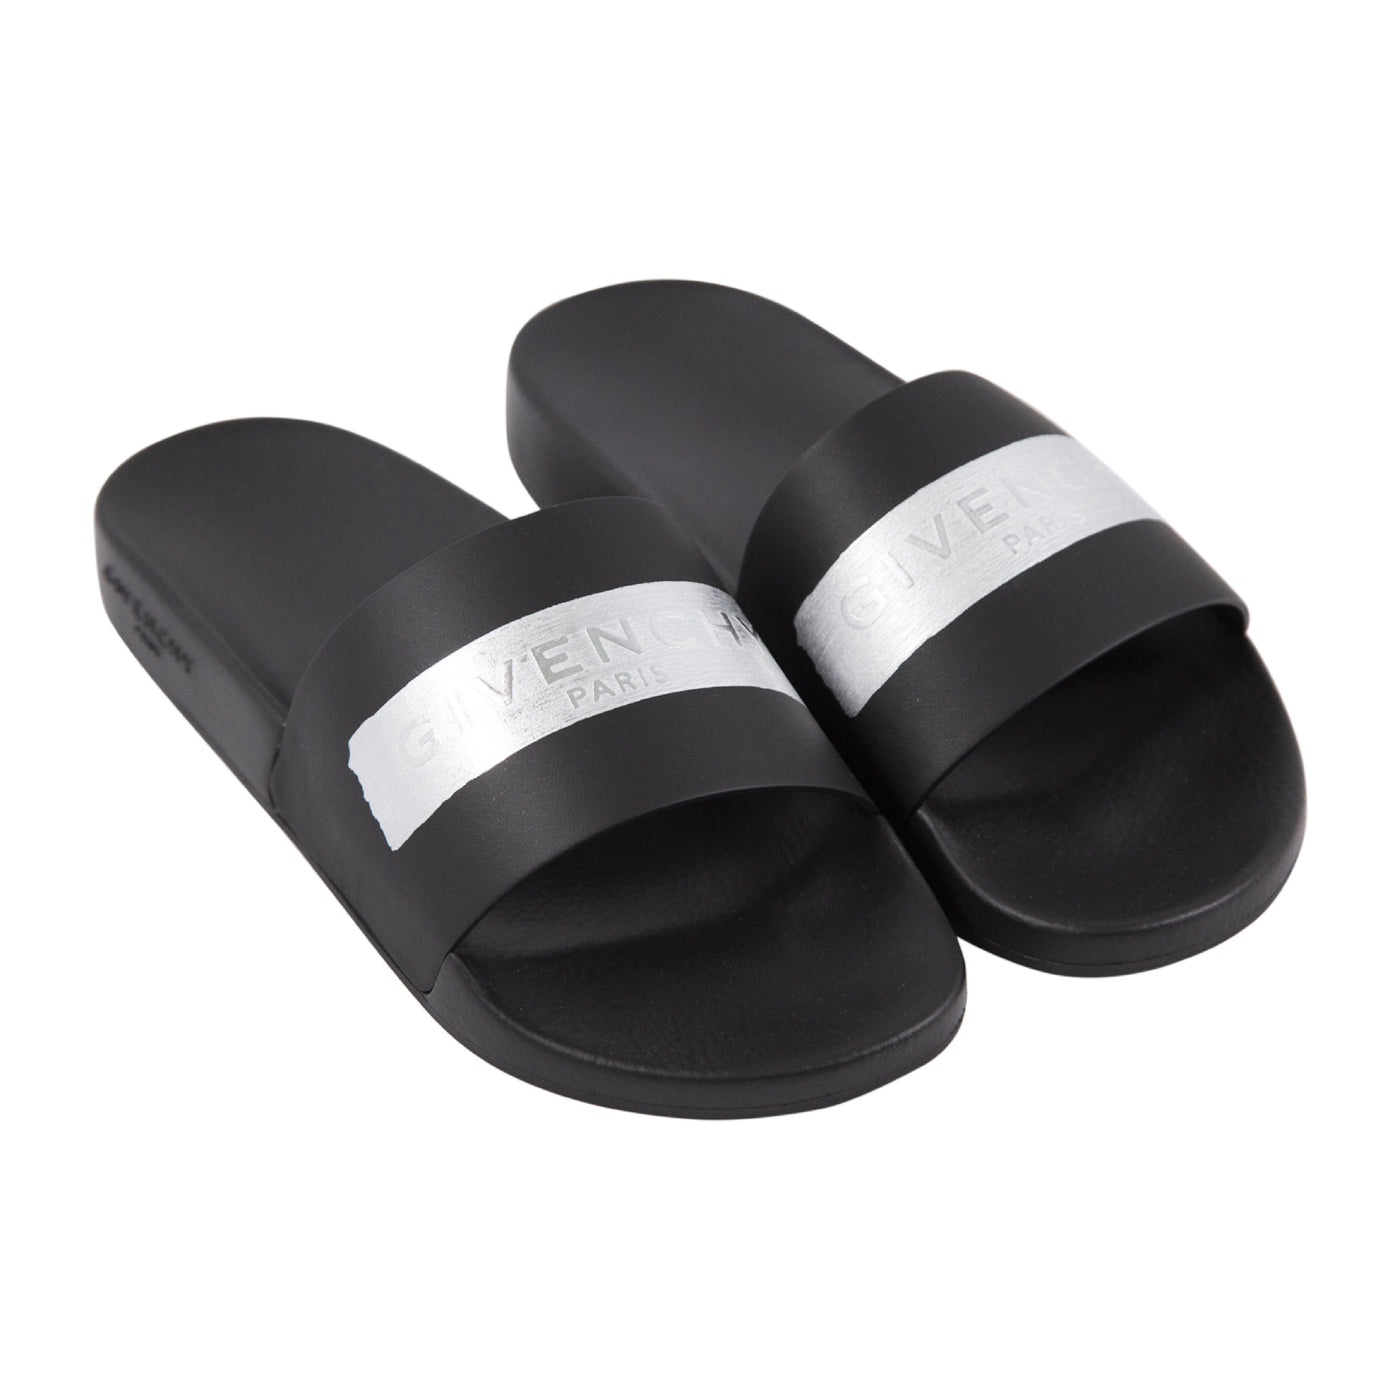 Load image into Gallery viewer, GIVENCHY SLIDE SANDAL W- DESIGN ON STRAP BLACK